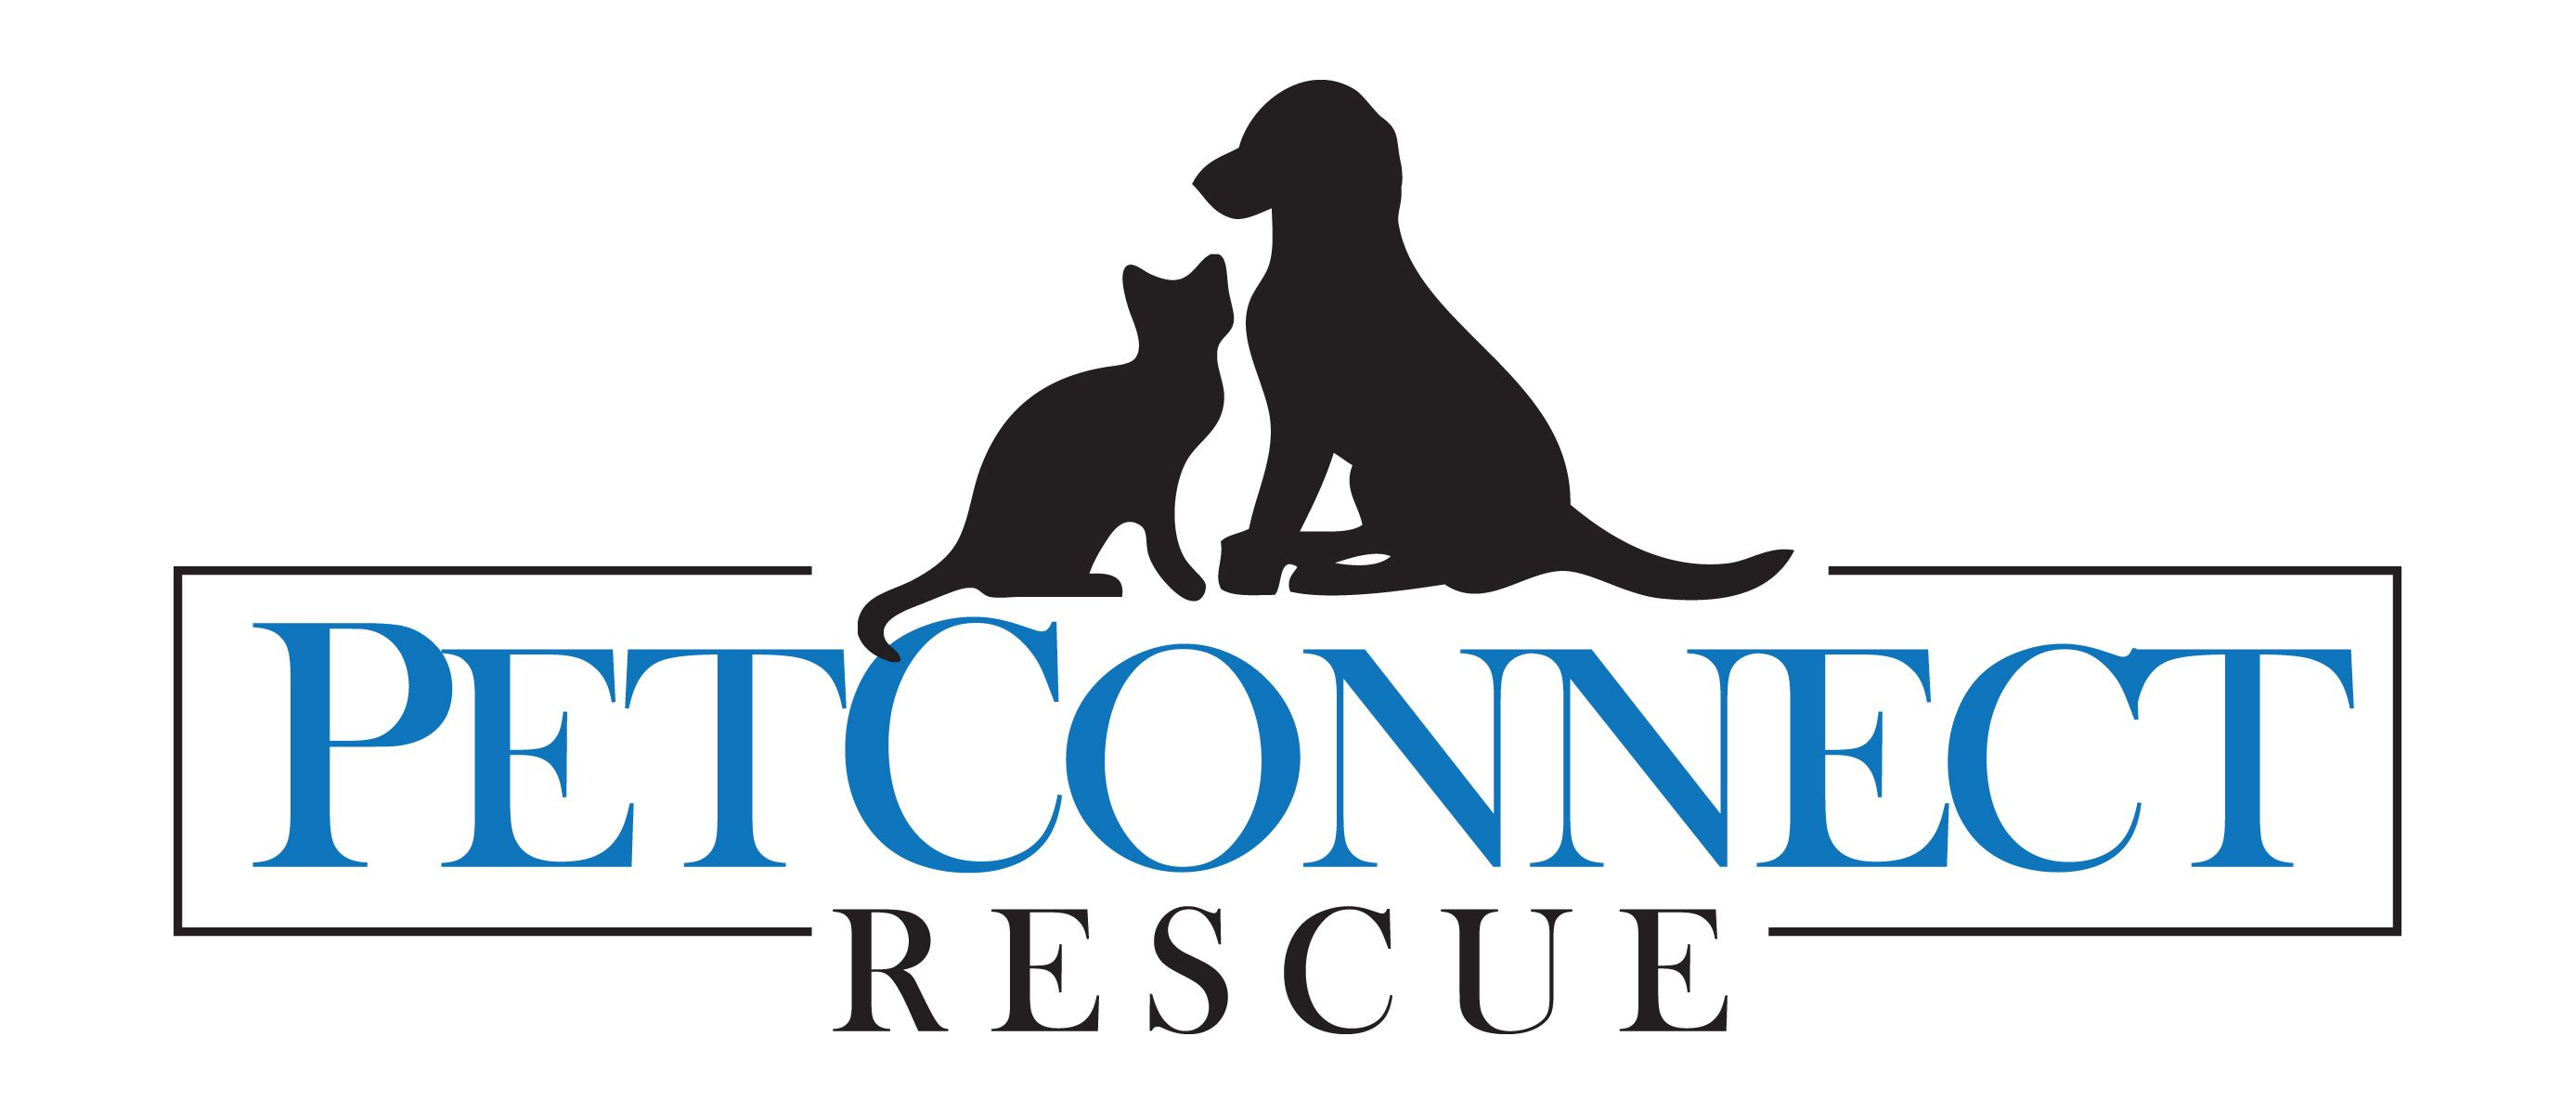 Get to know petconnect rescue animal rescue dog list